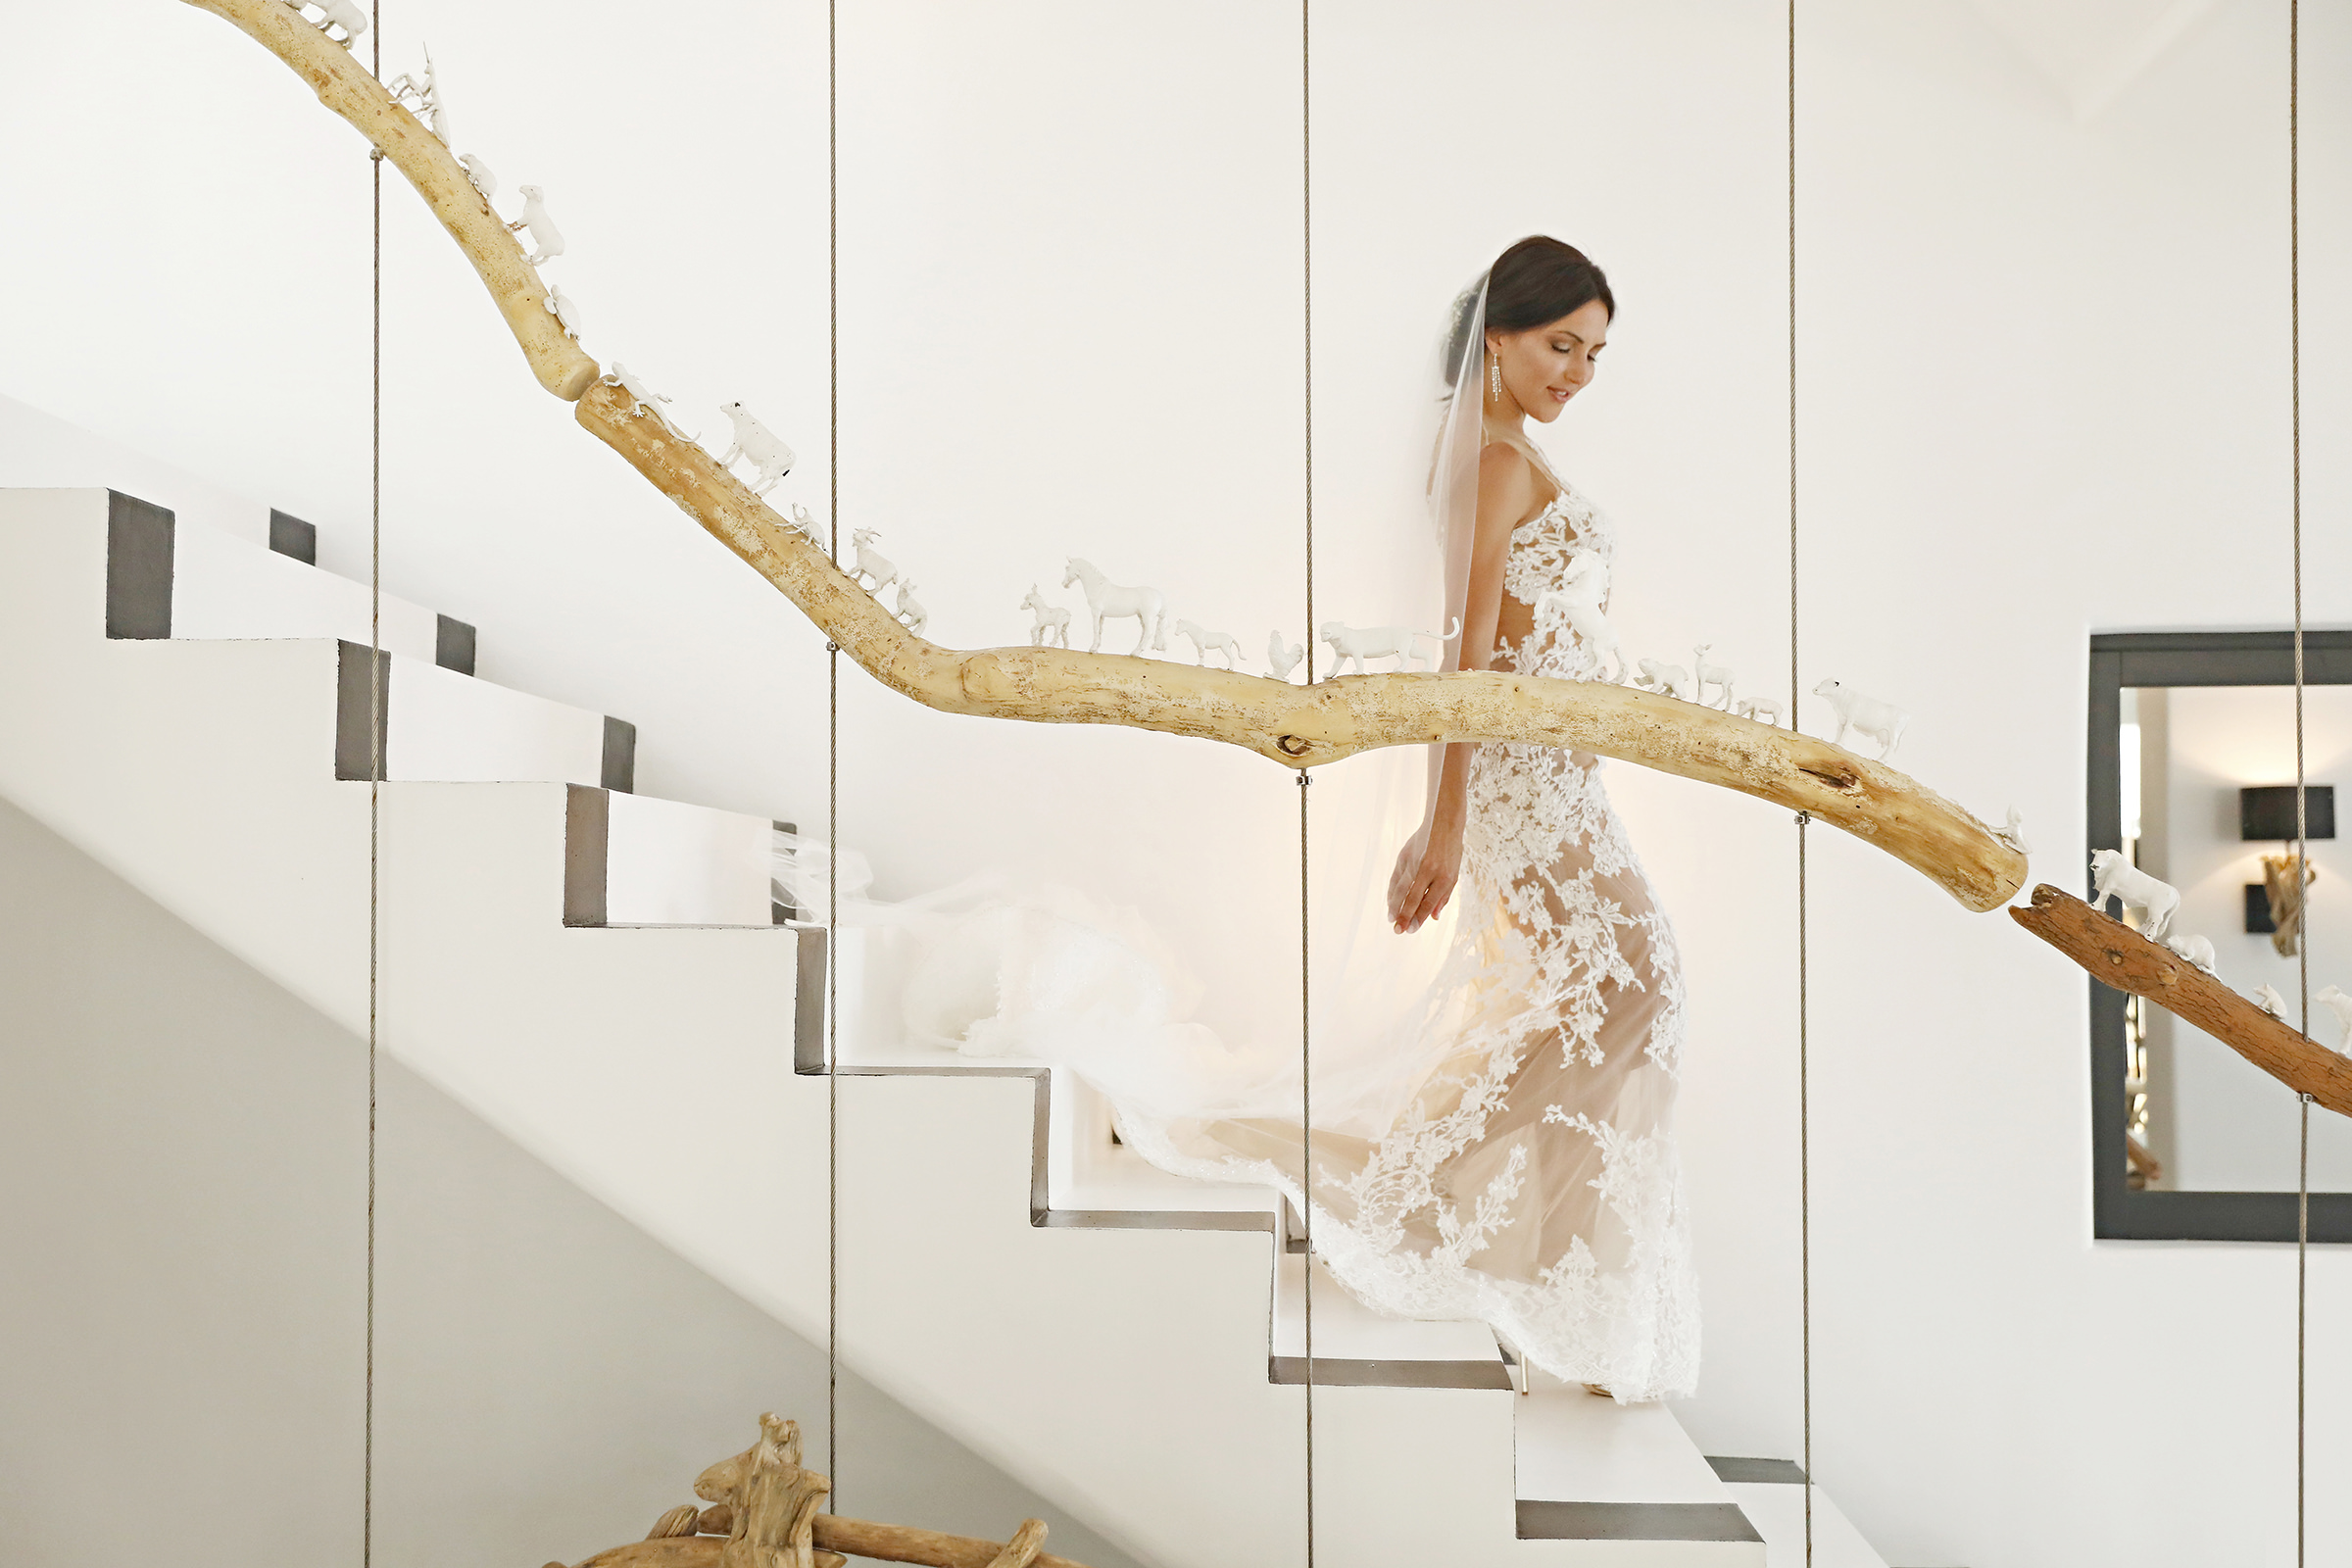 Bride descending stairs in lace gown and veil - photo by Kenny Kim Photography